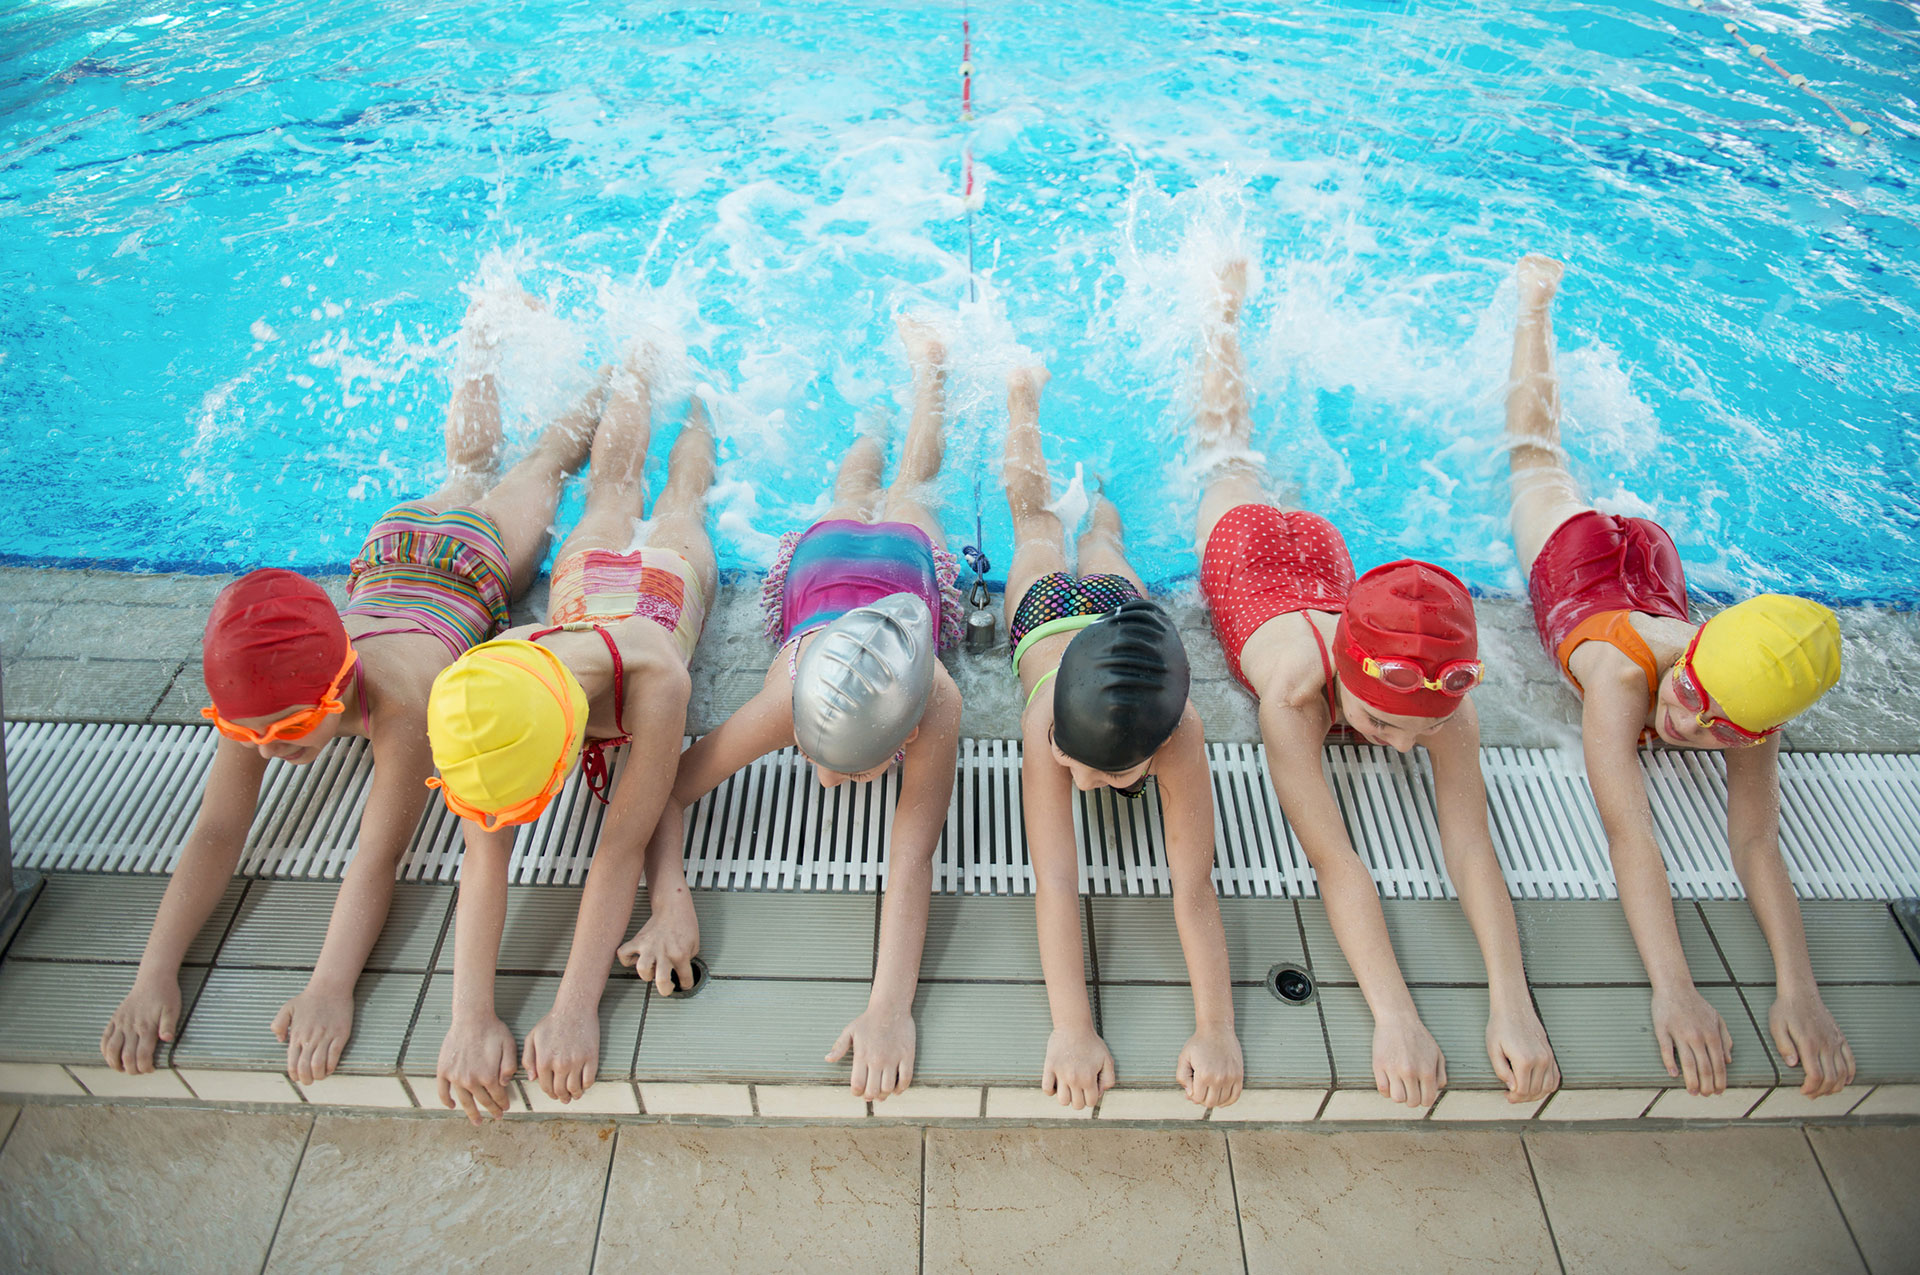 Pupils Trampolining Pictures   Getty Images